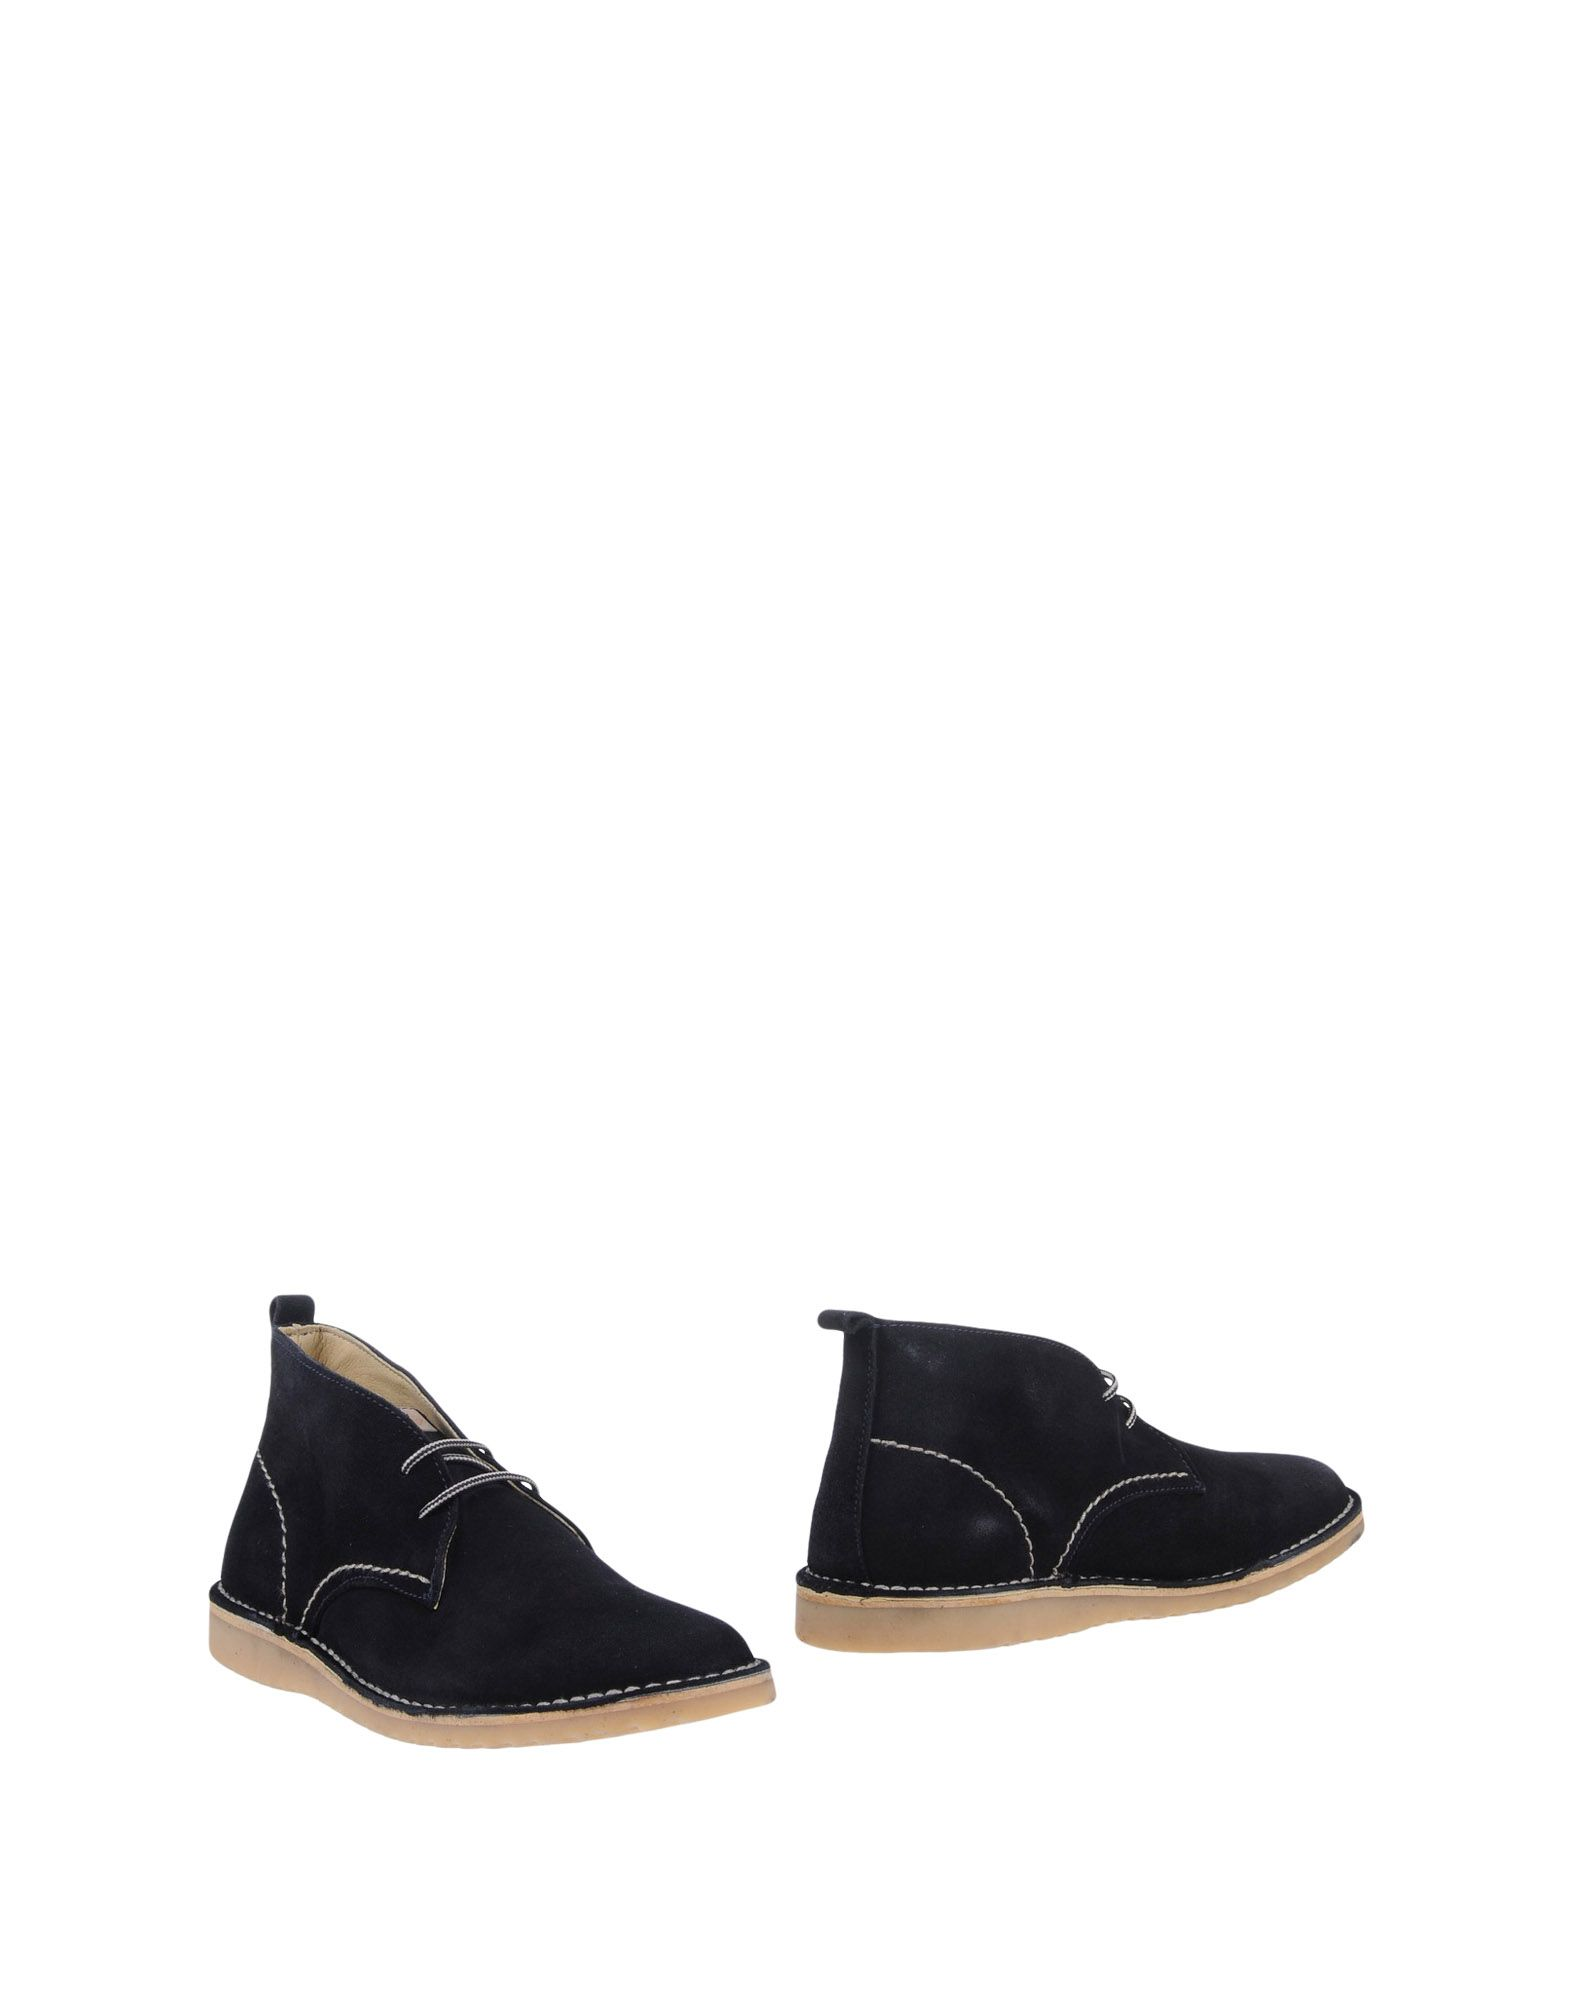 Bottine Maians Femme - Bottines Maians sur